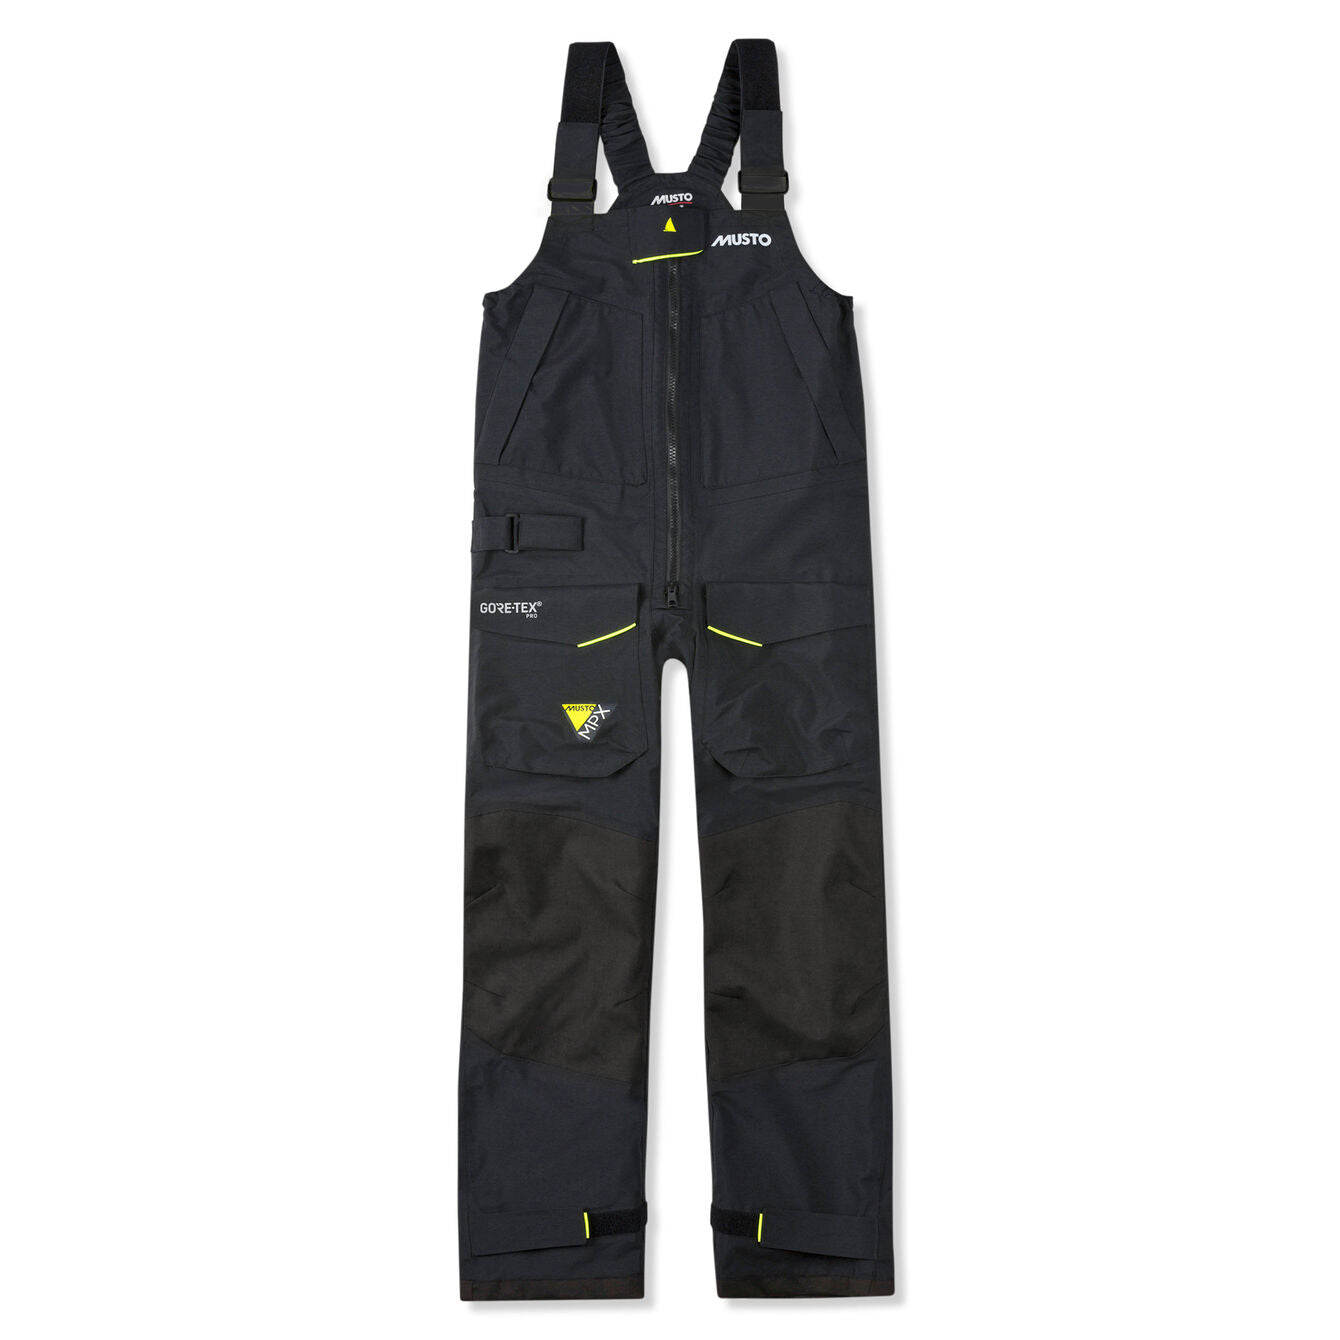 WOMEN'S MPX GORE-TEX PRO OFFSHORE TROUSERS